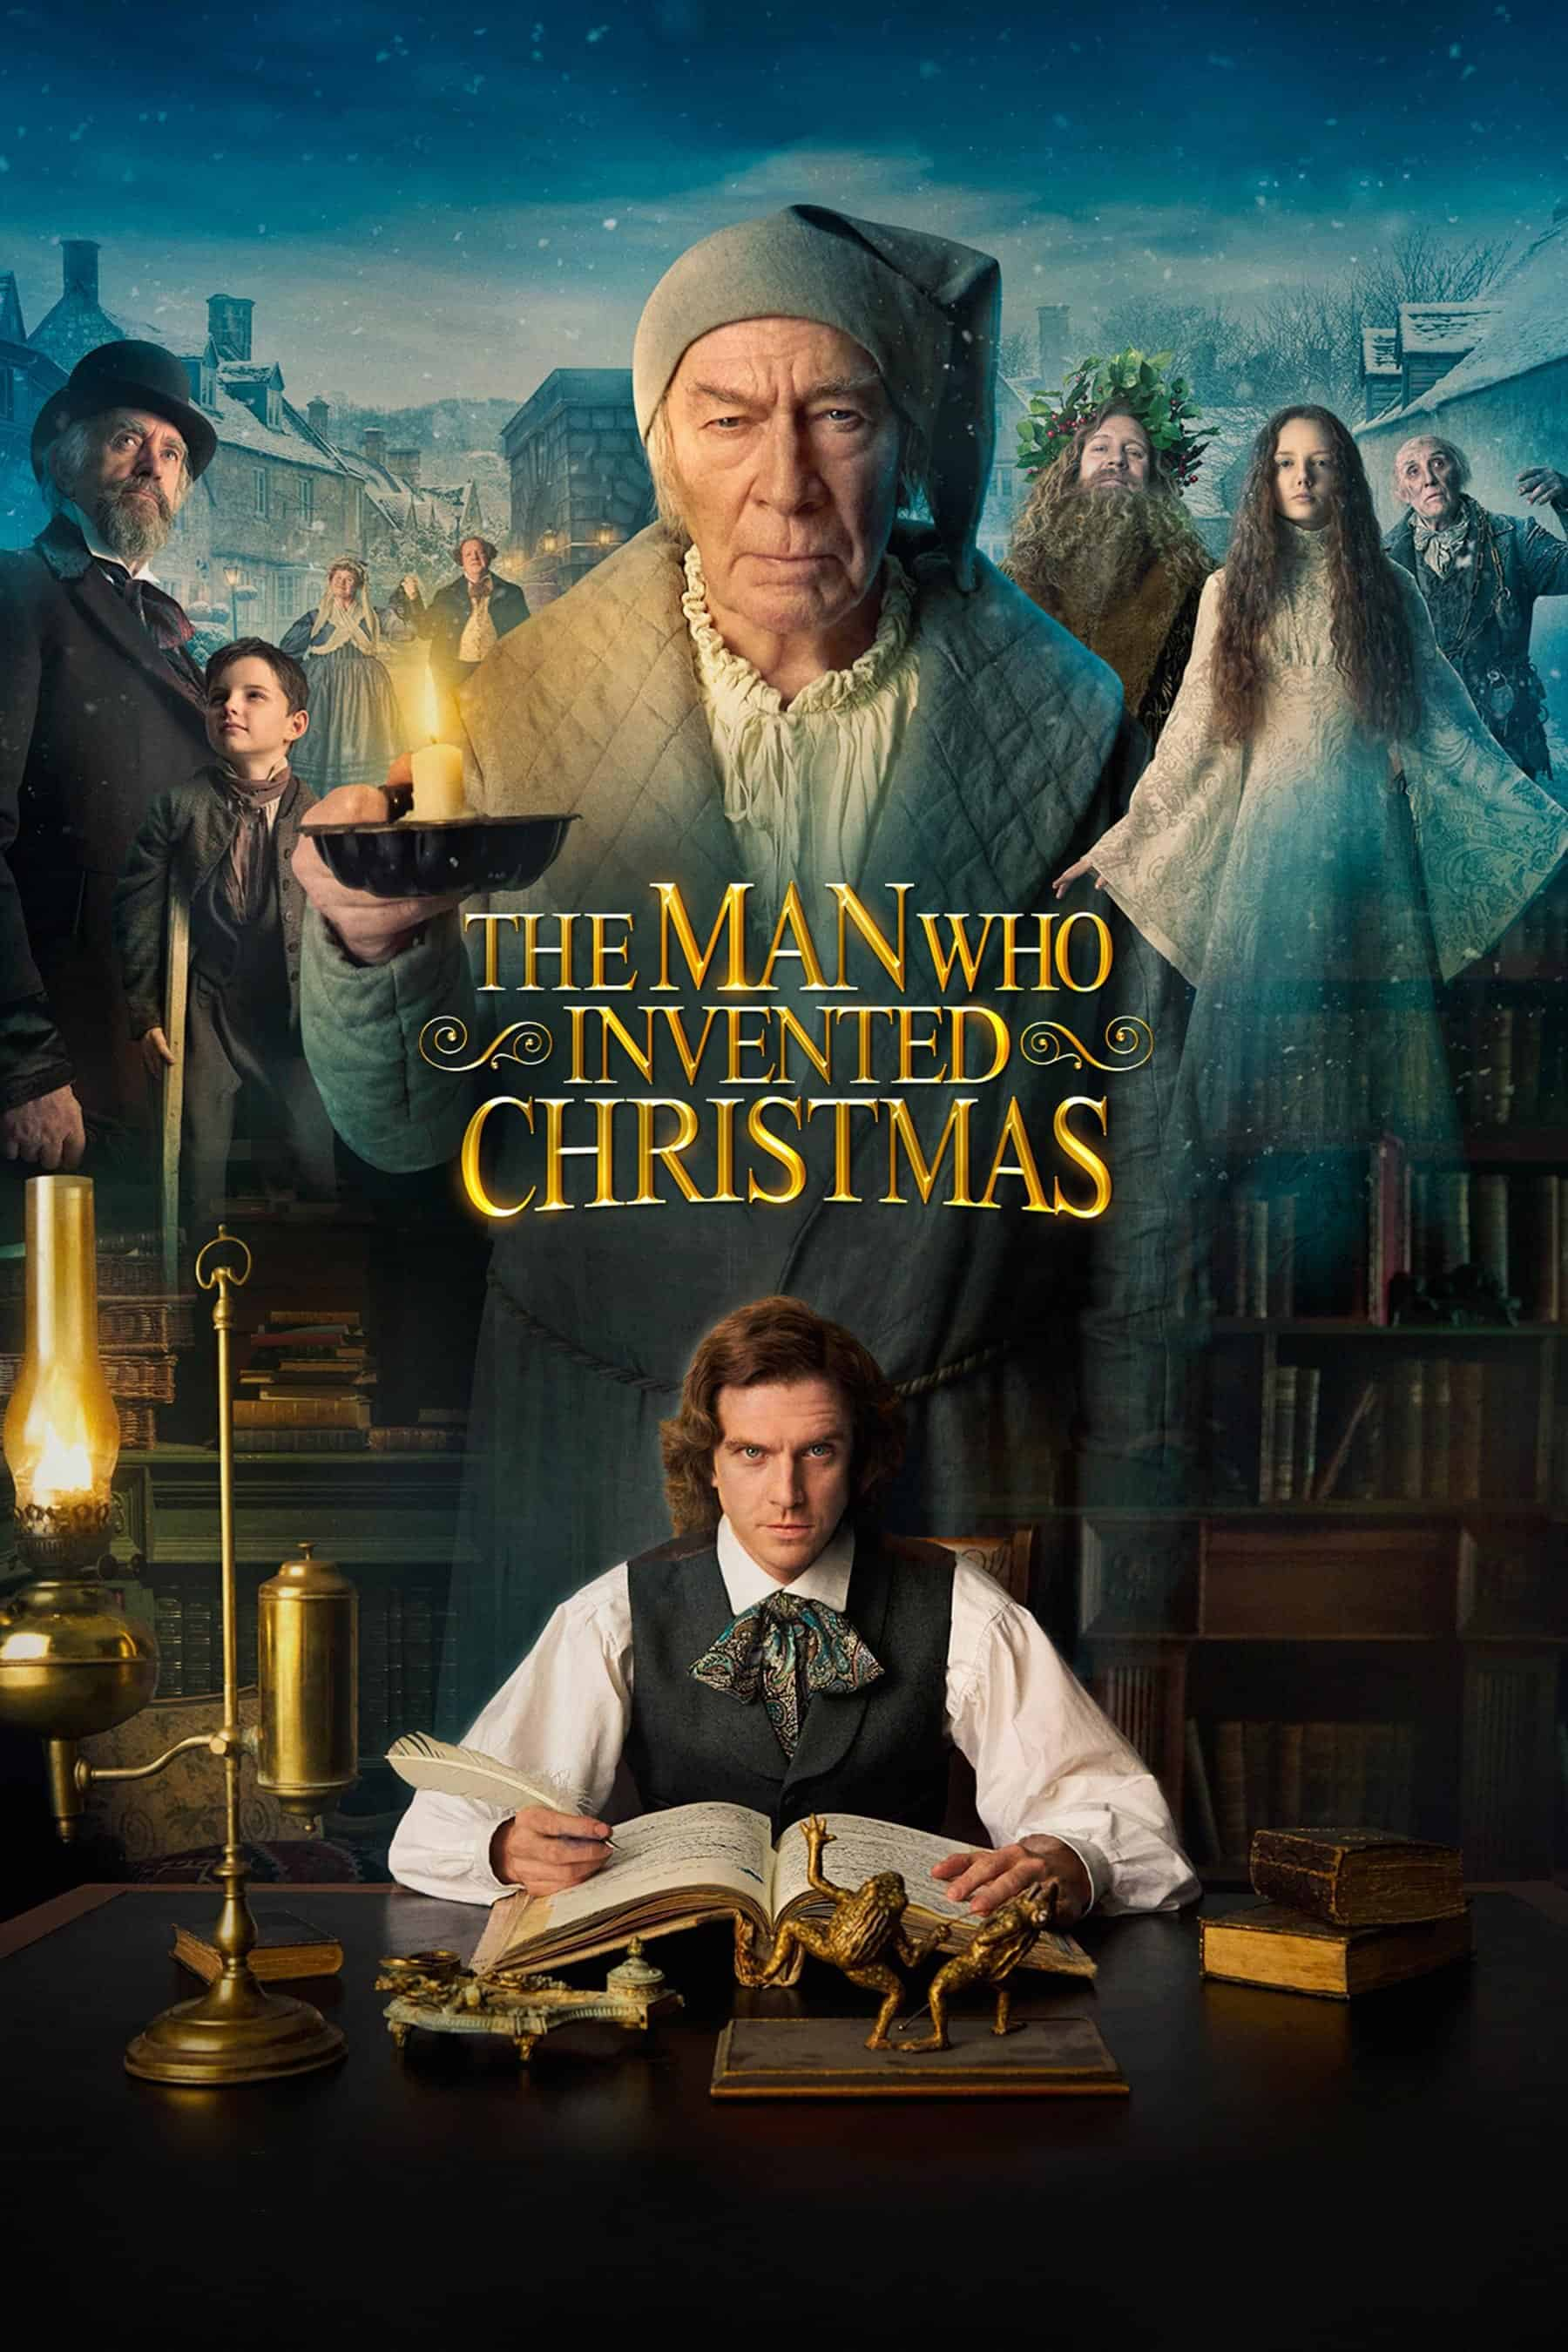 The Man Who Invented Christmas, 2017